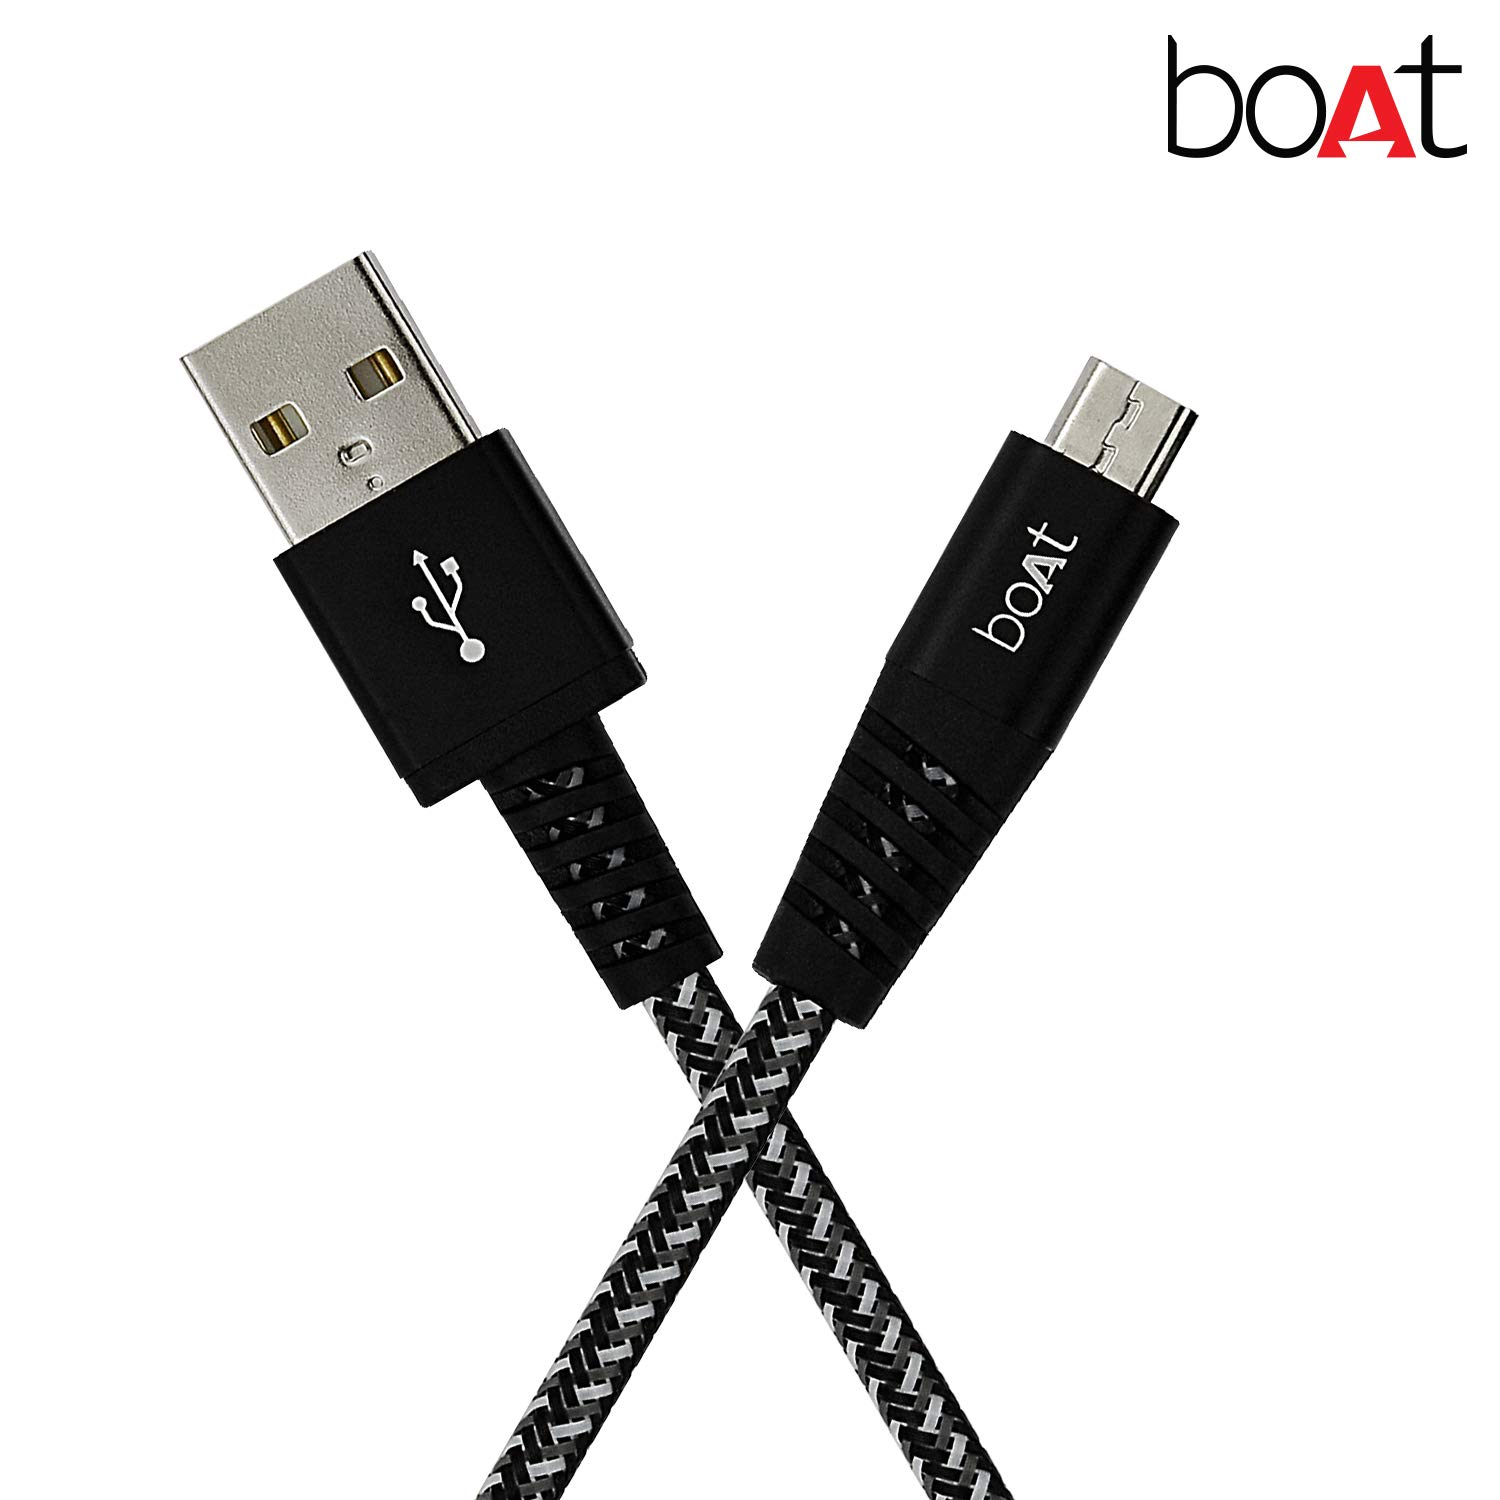 boAt Rugged v3 Extra Tough Unbreakable Braided Micro USB Cable 1.5 Meter (Black) at Rs.99